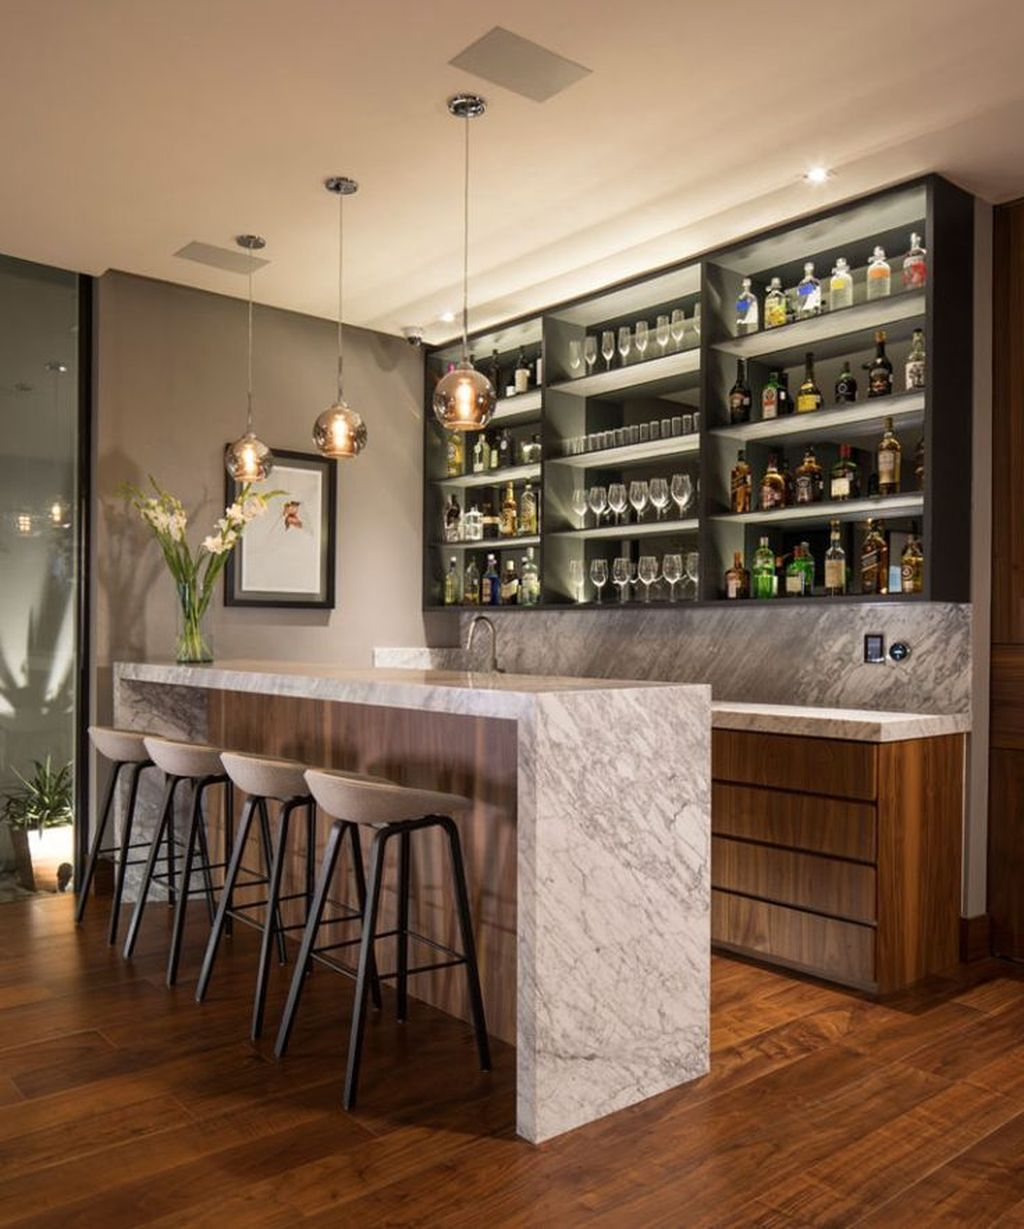 34 Awesome Basement Bar Designs Ideas That You Definitely Like